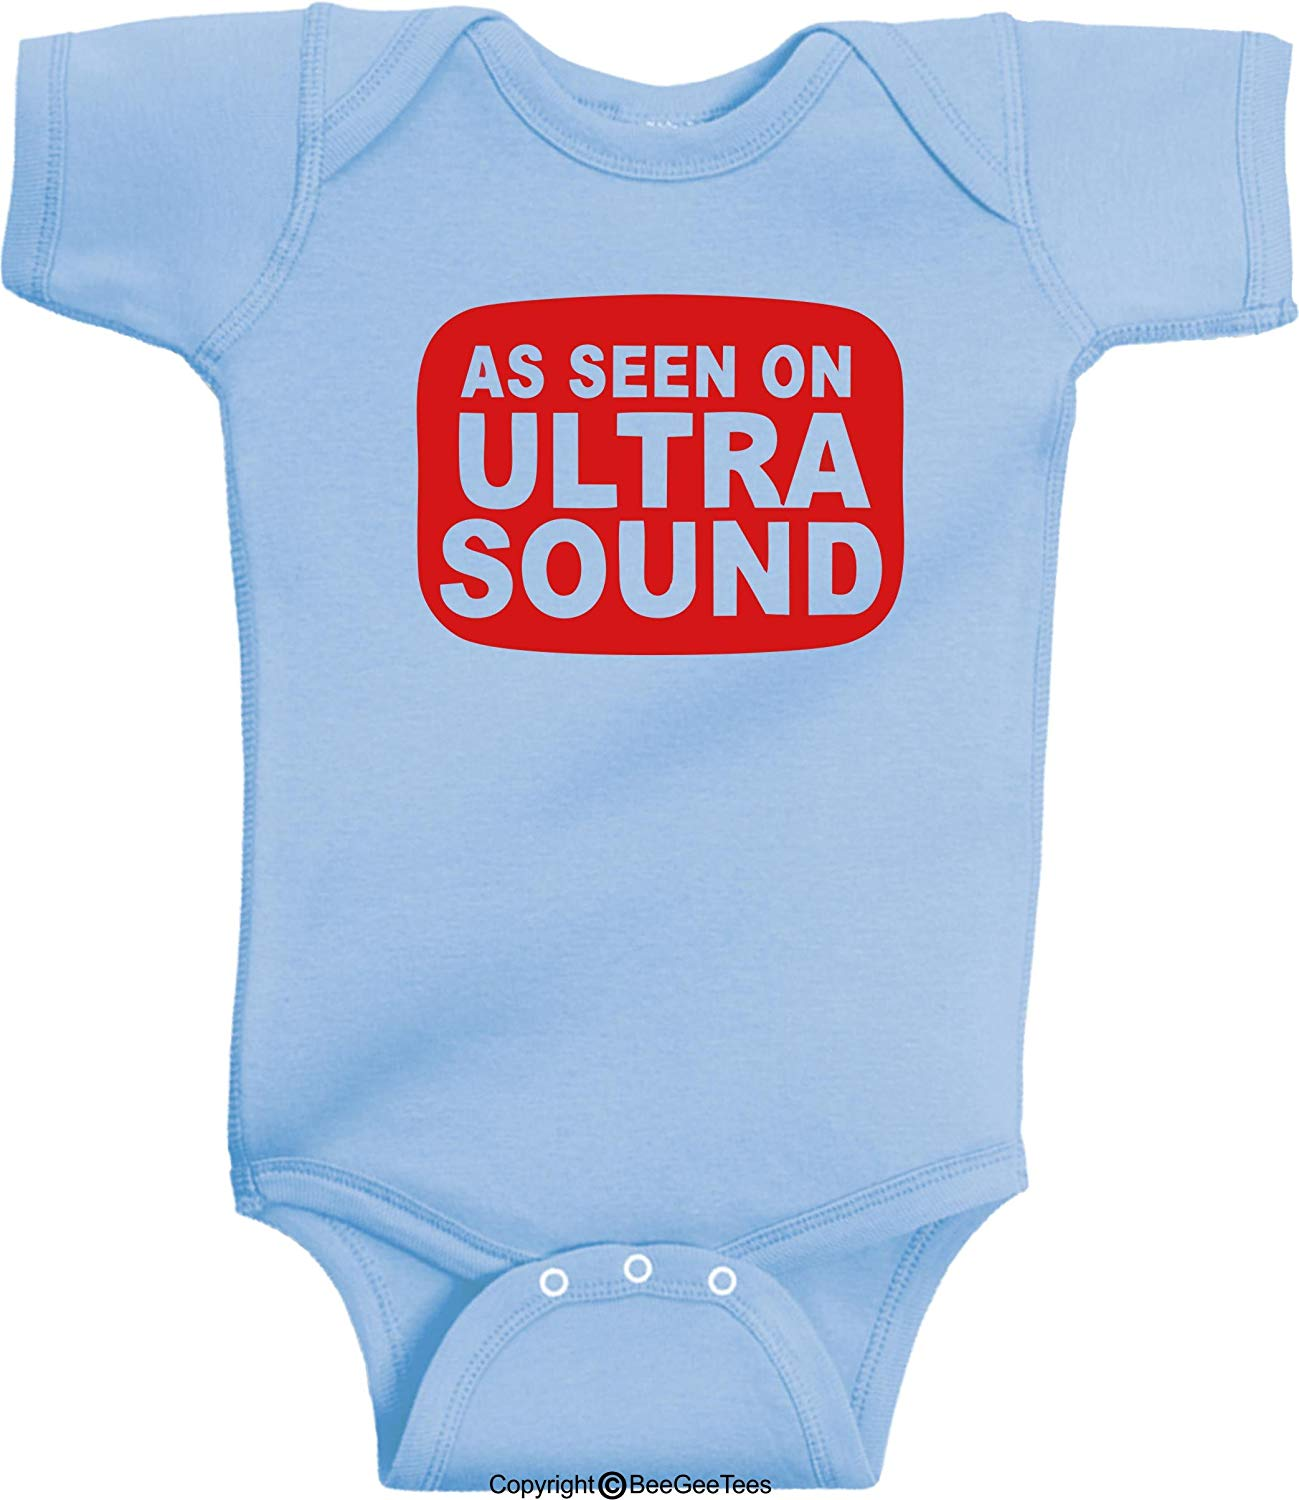 As Seen On Ultrasound Funny Baby Bodysuit Hipster Gift As Seen On TV by BeeGeeTees